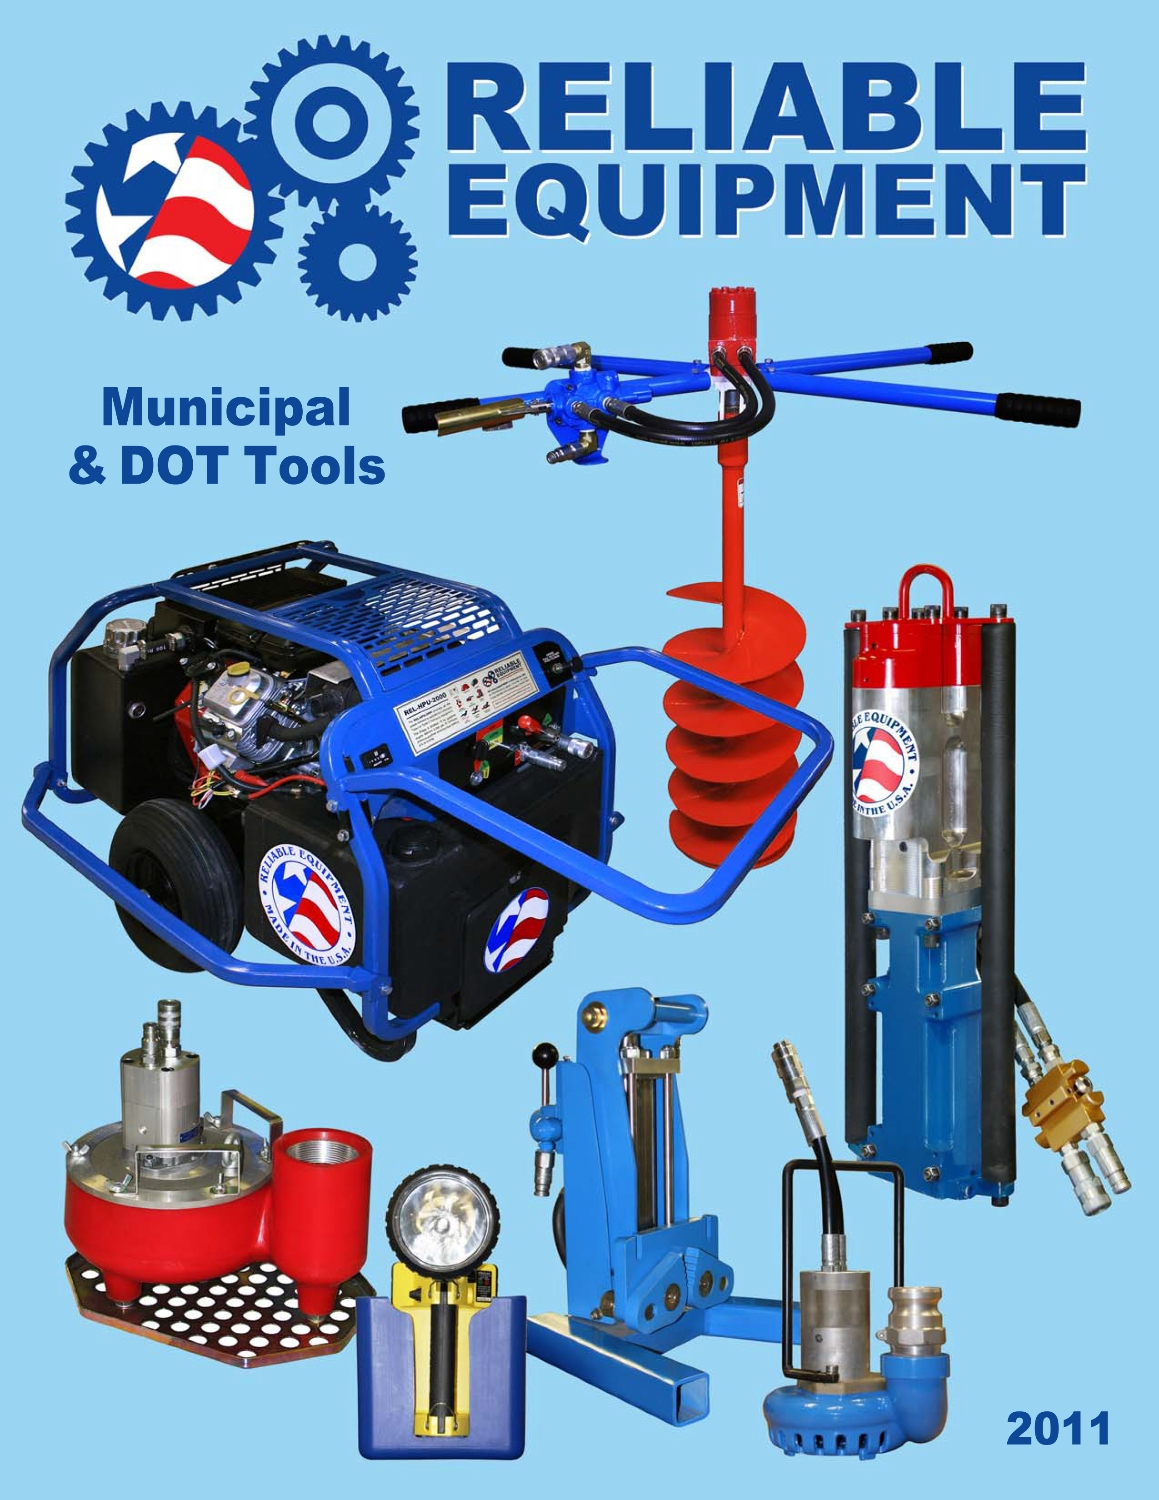 Municipal & DOT Equipment 1